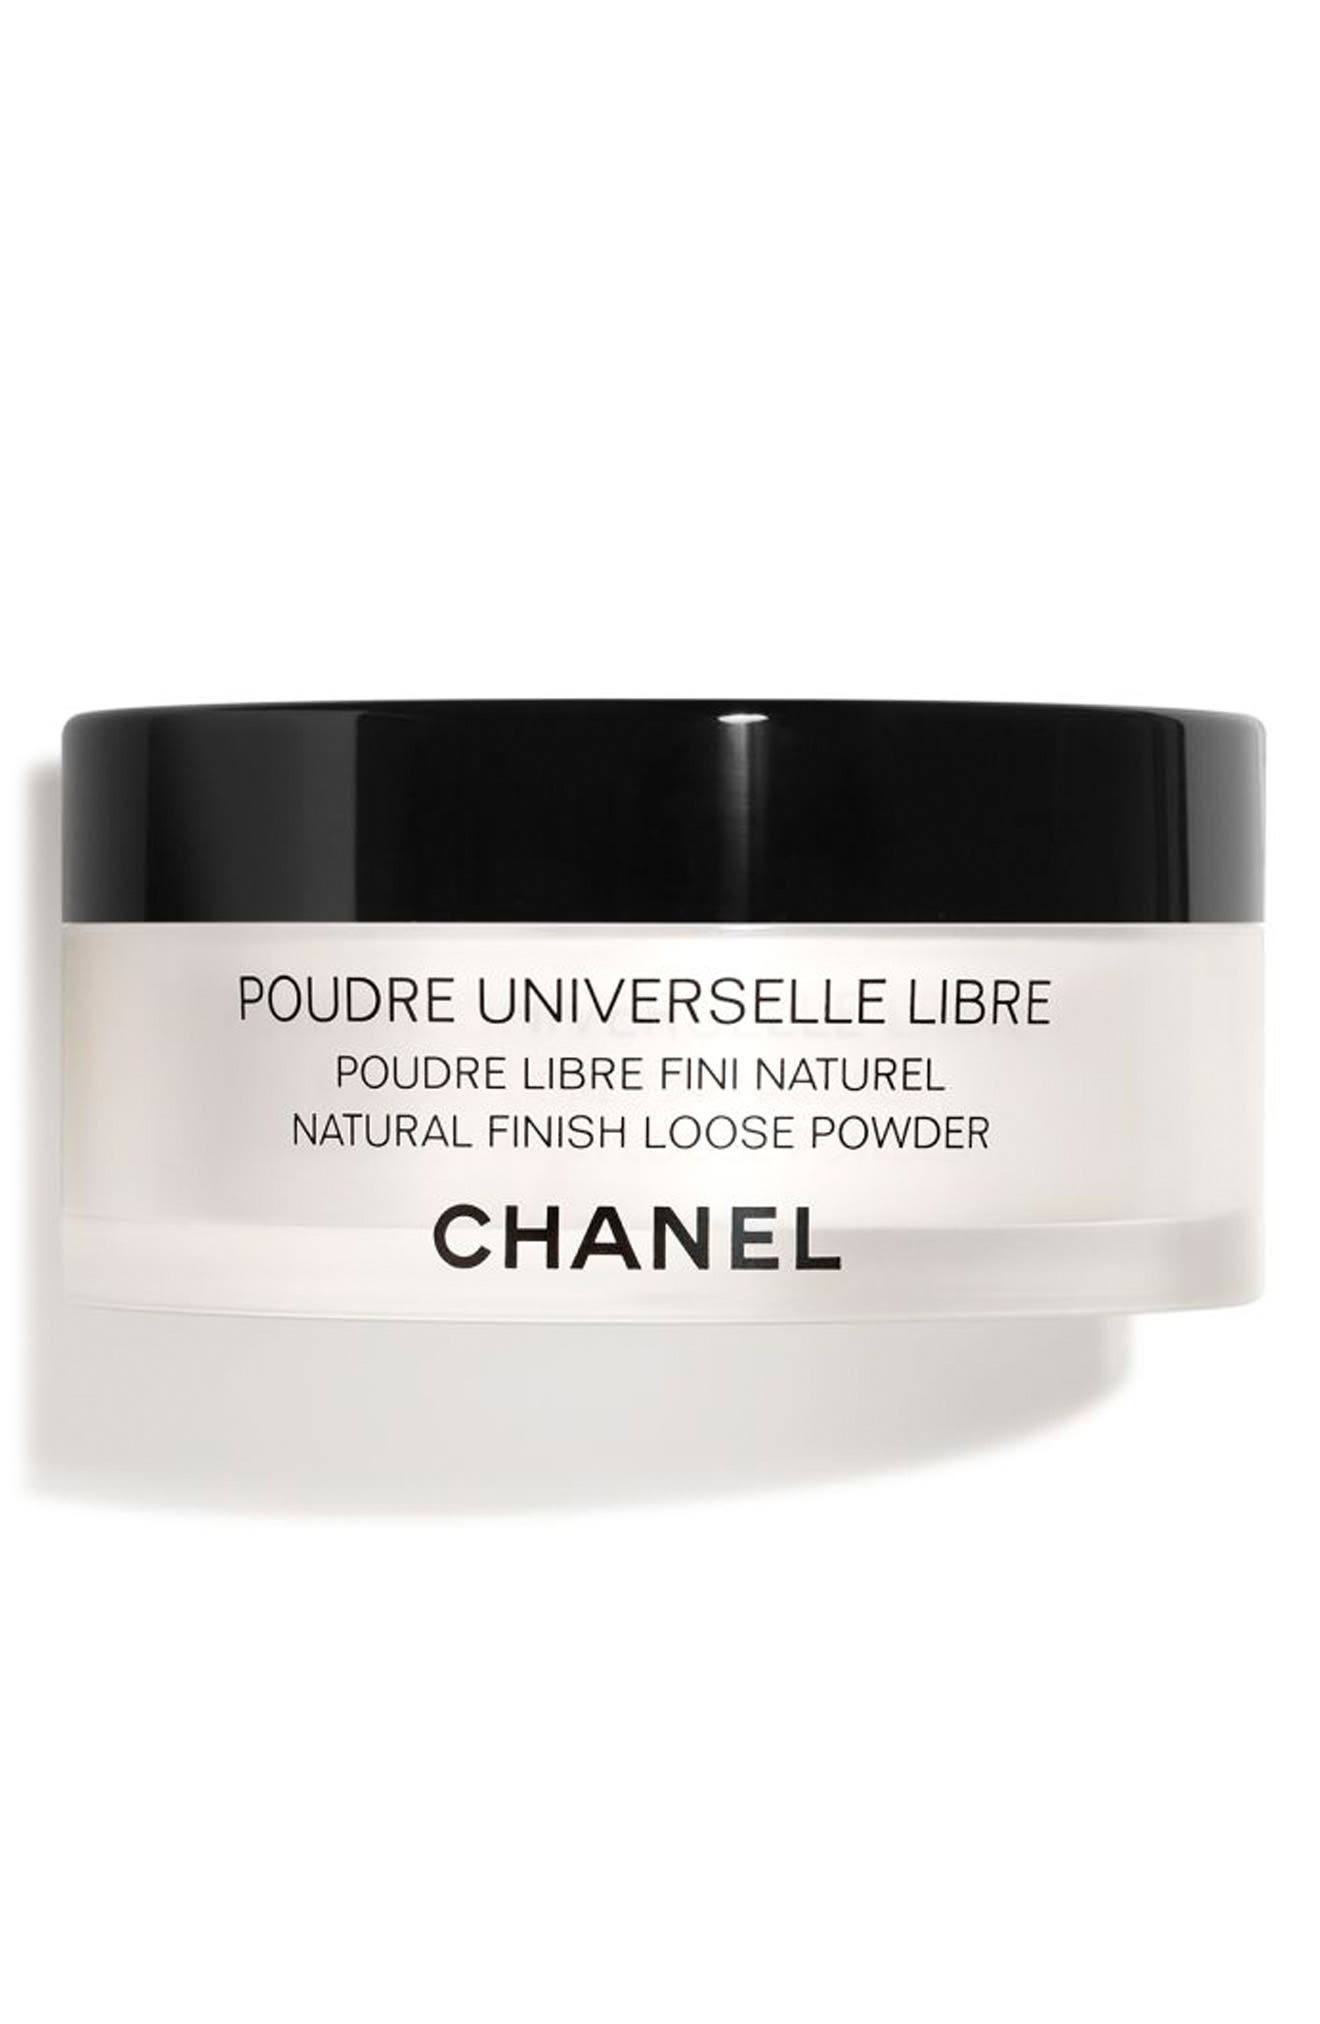 CHANEL POUDRE UNIVERSELLE LIBRE Natural Finish Loose Powder   Nordstrom